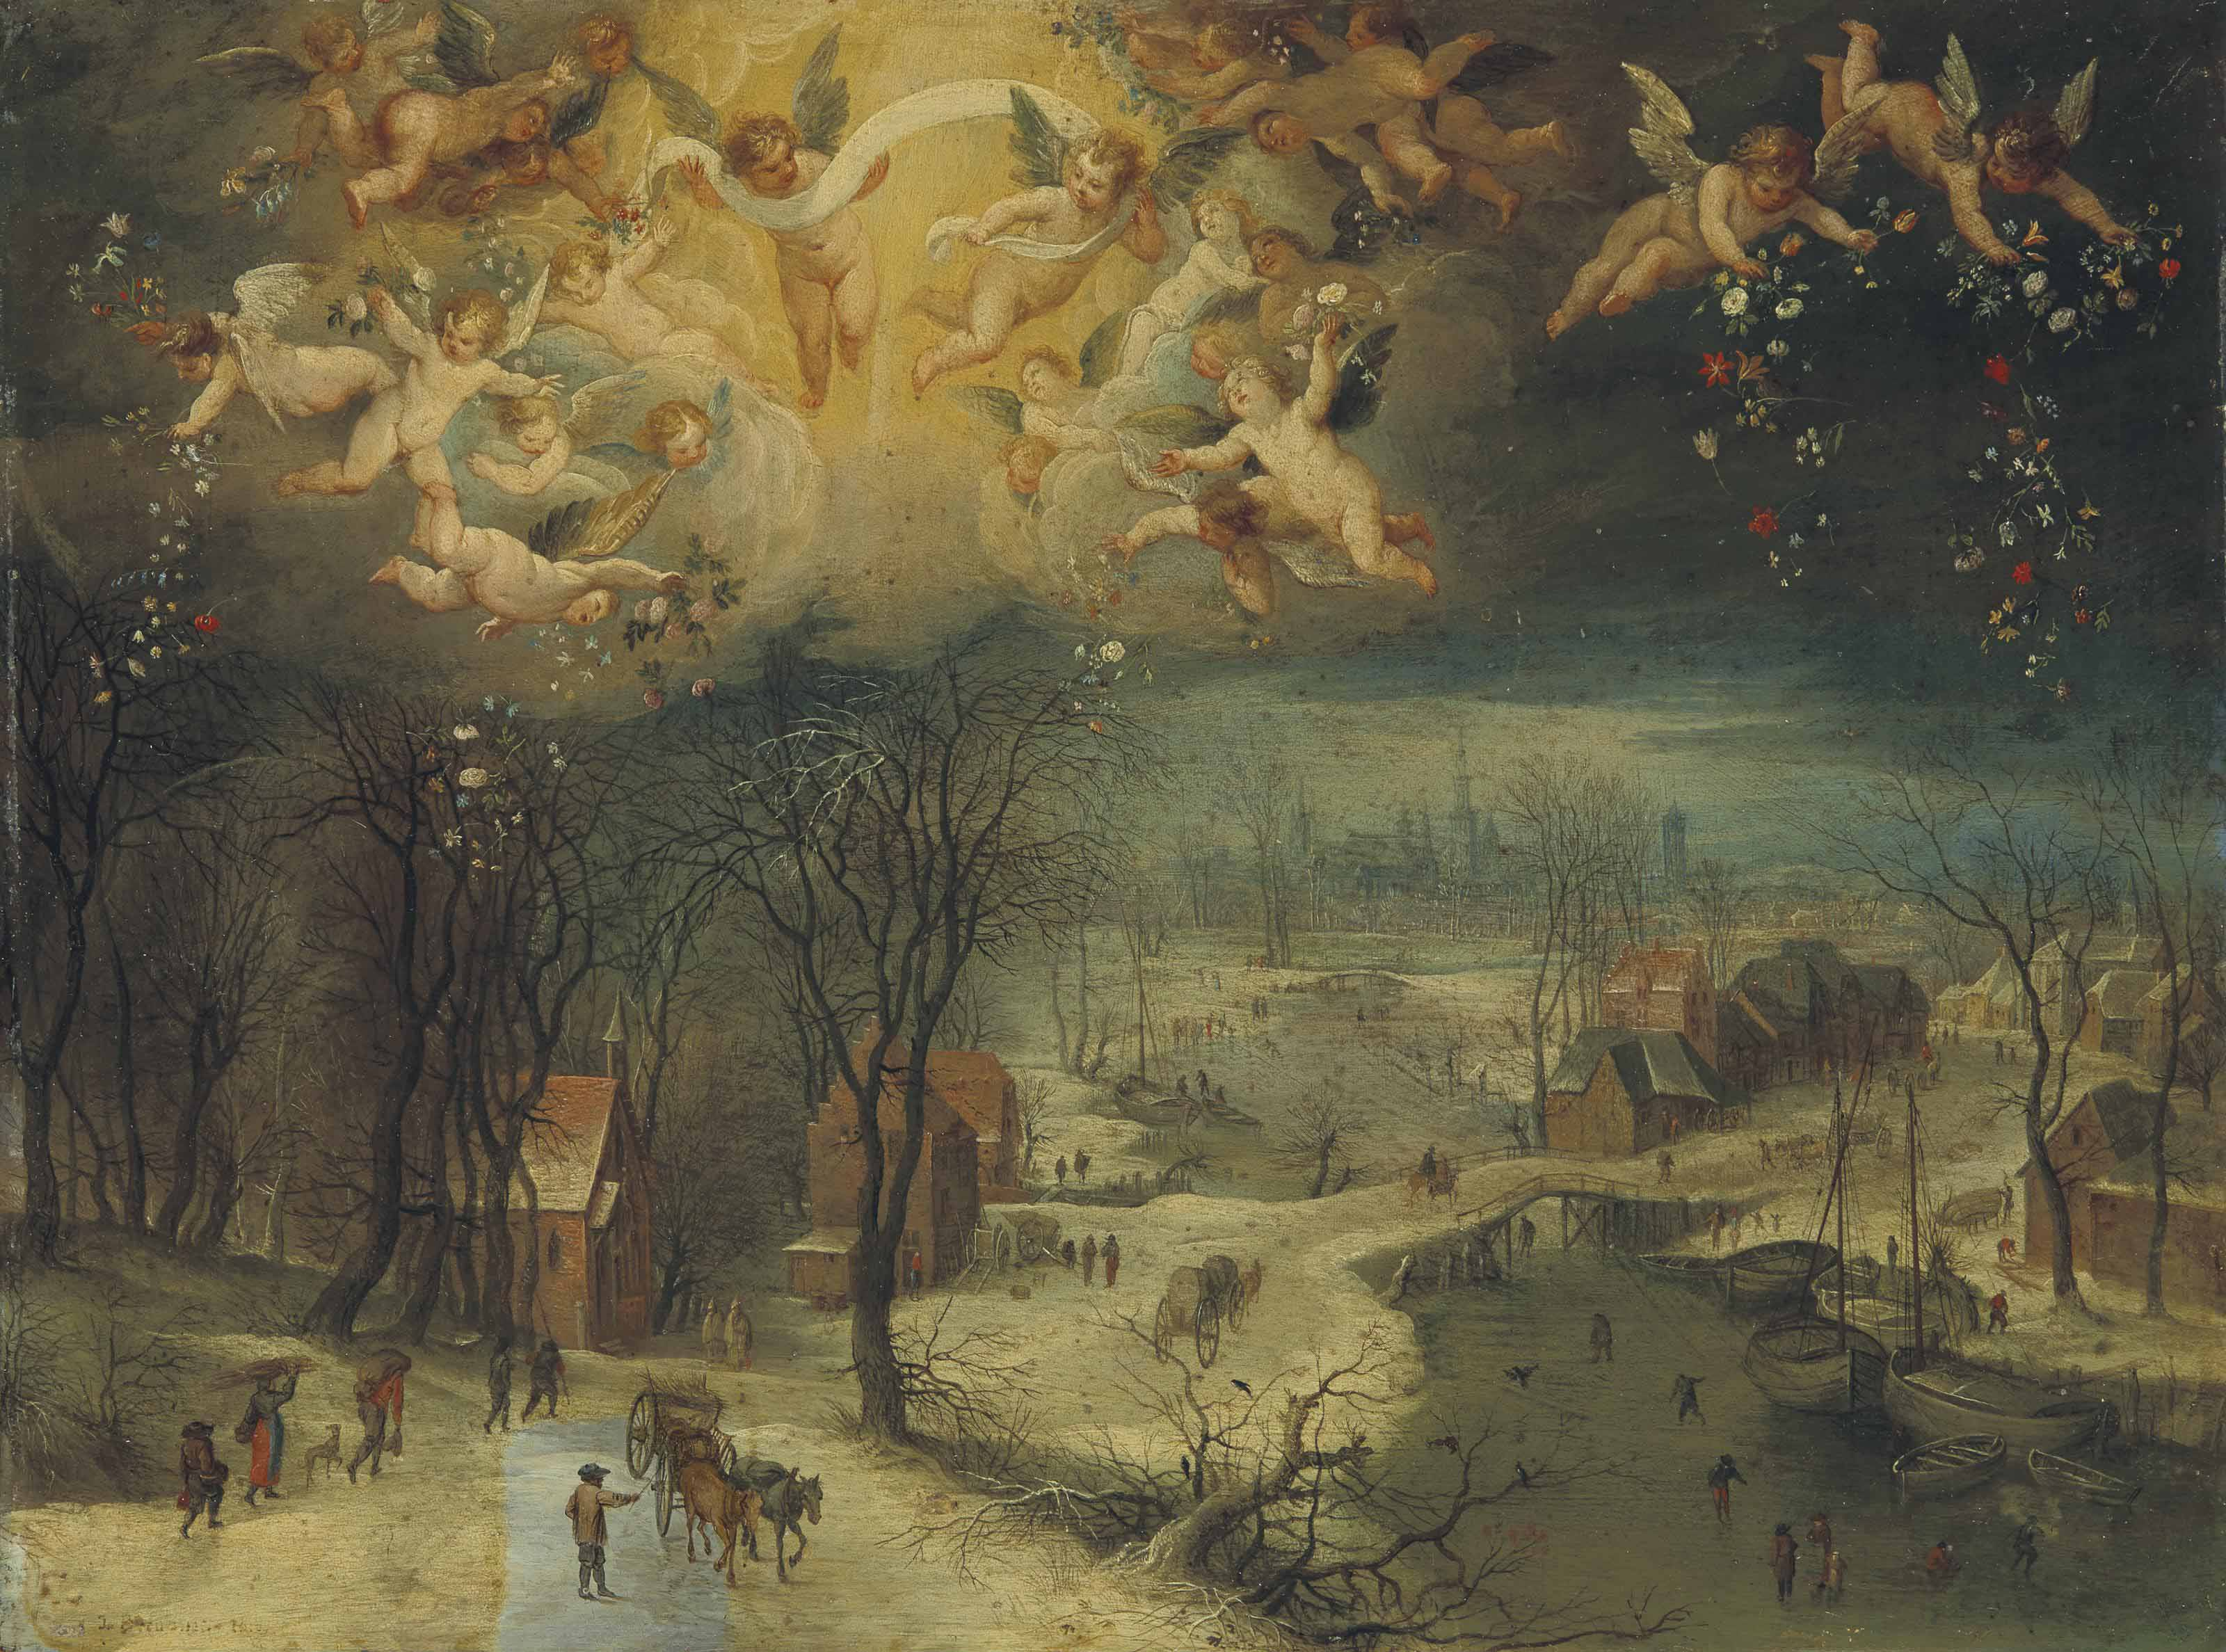 A winter landscape with villagers gathering wood and skaters on a frozen river, putti scattering flowers above